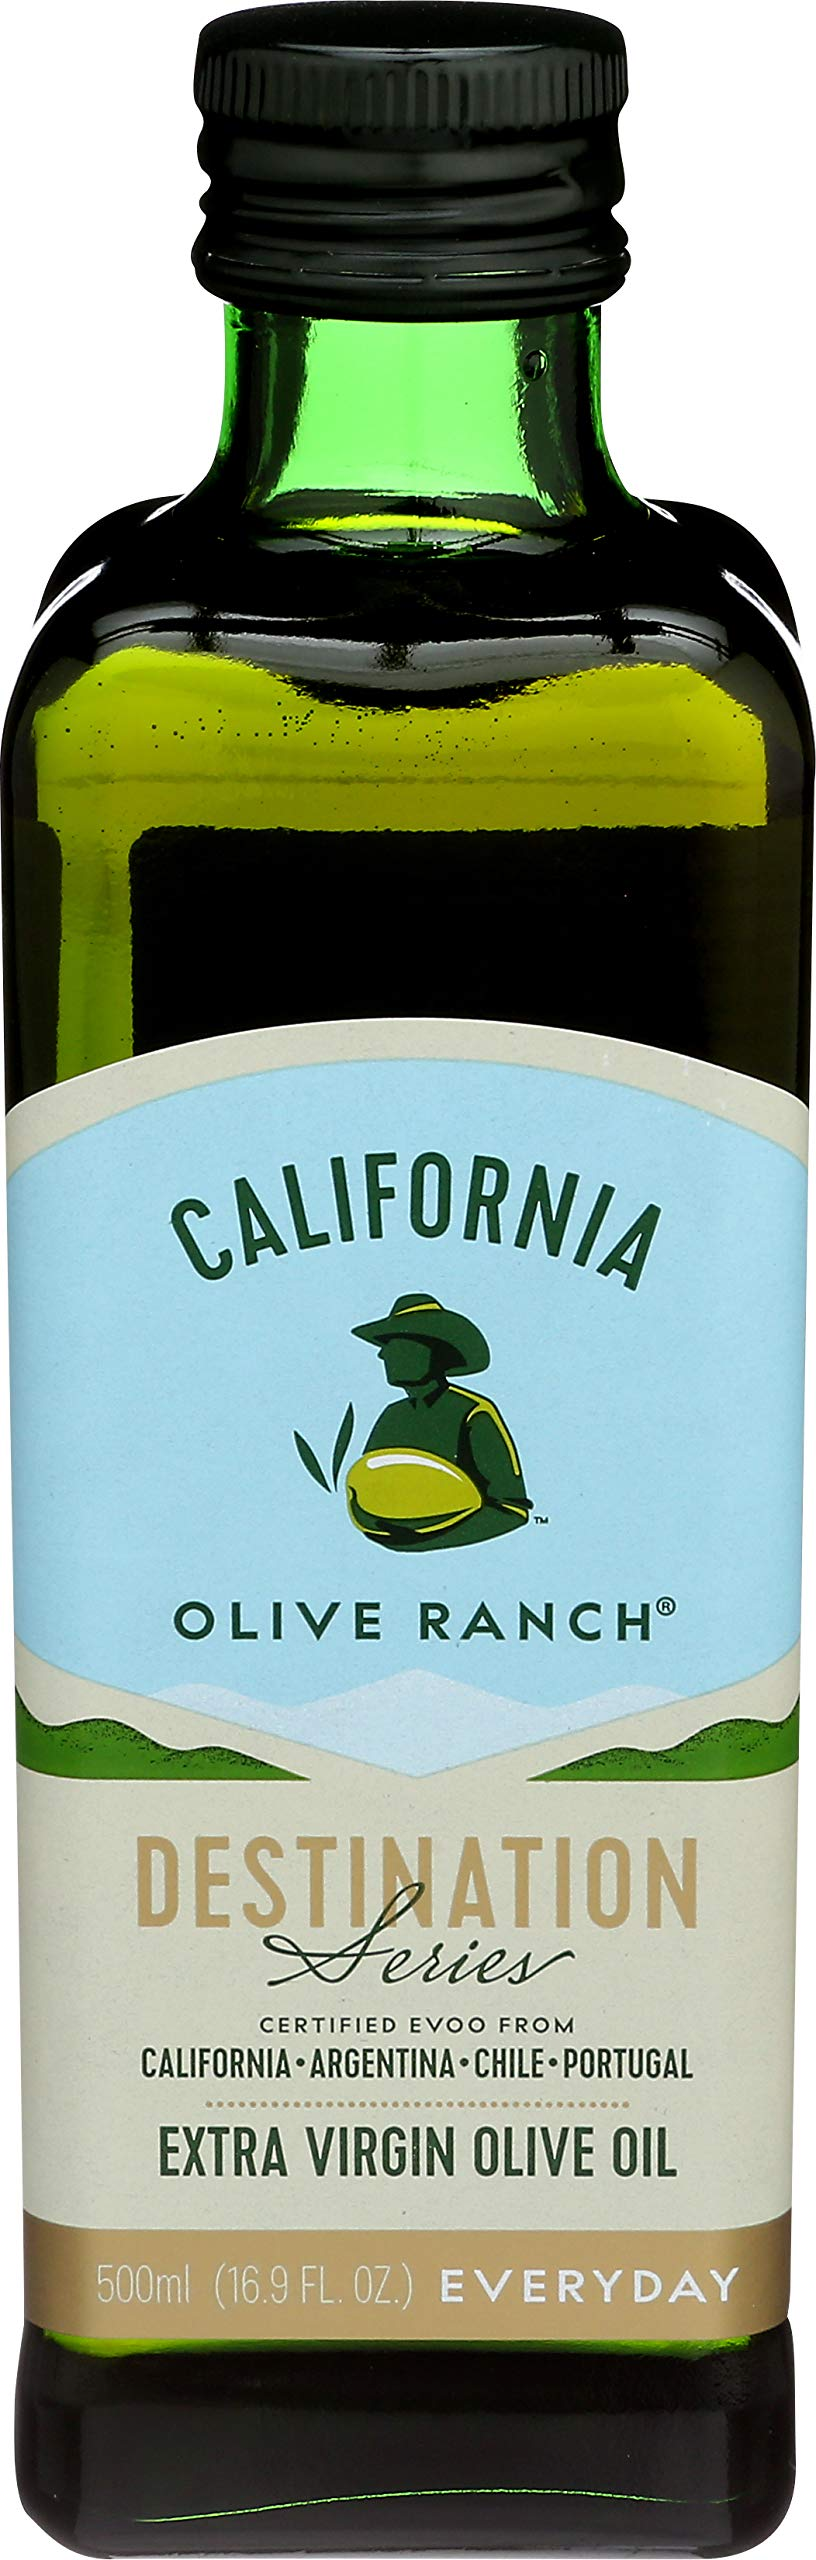 California Olive Ranch 16.9 OZ - Pack of 5 by California Olive Ranch